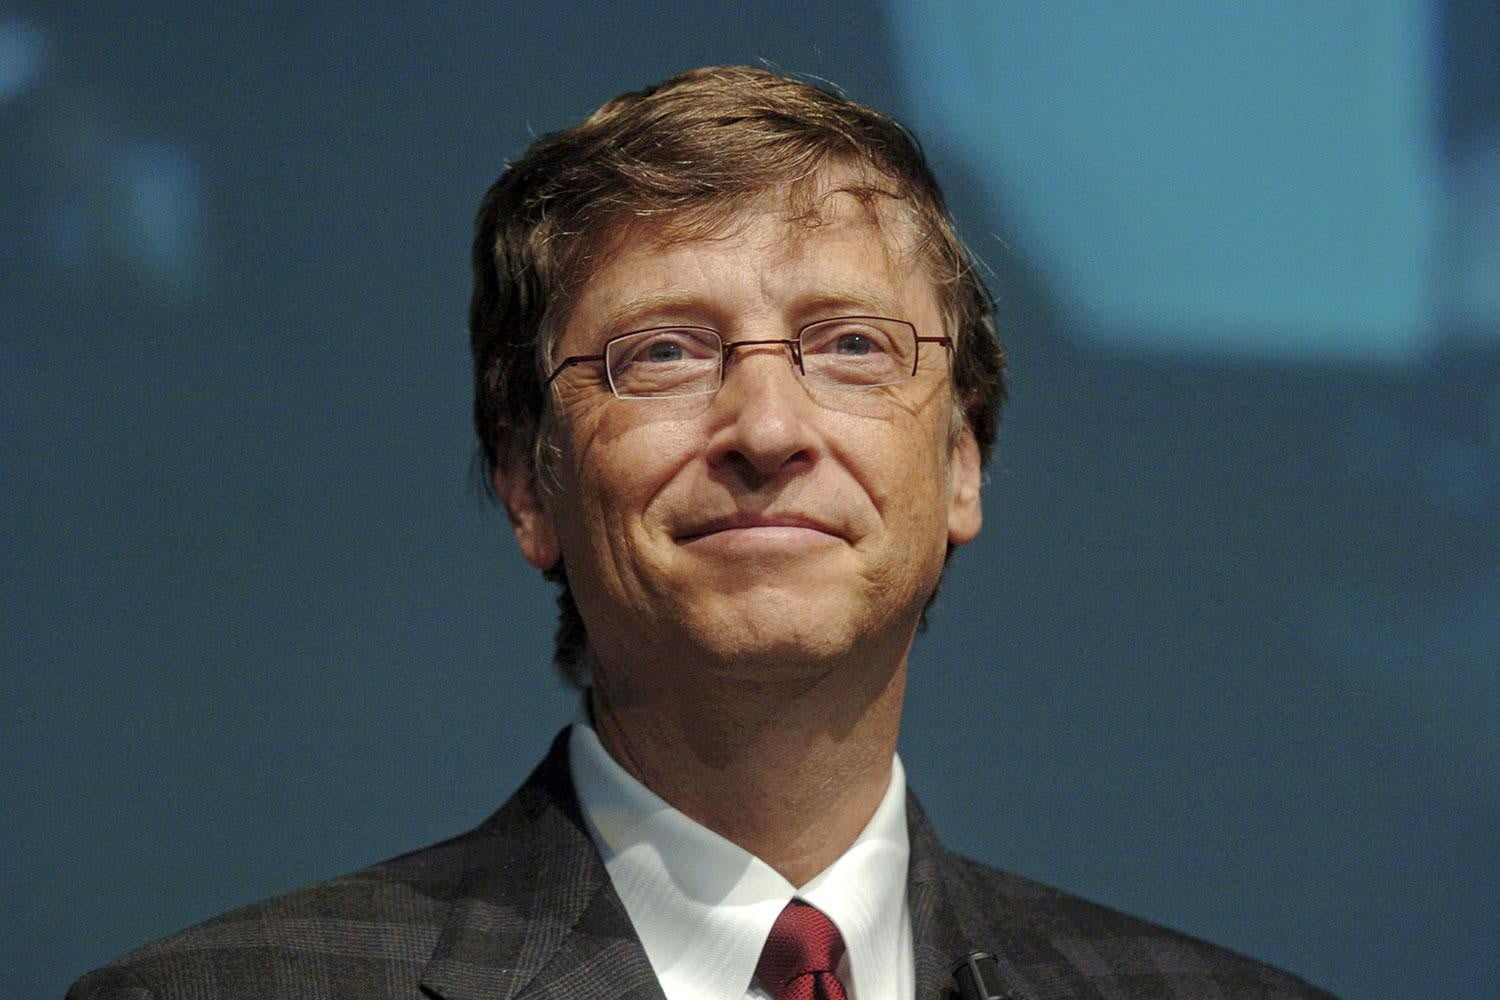 Bill Gates is building his own city, and he's loading it with smart tech